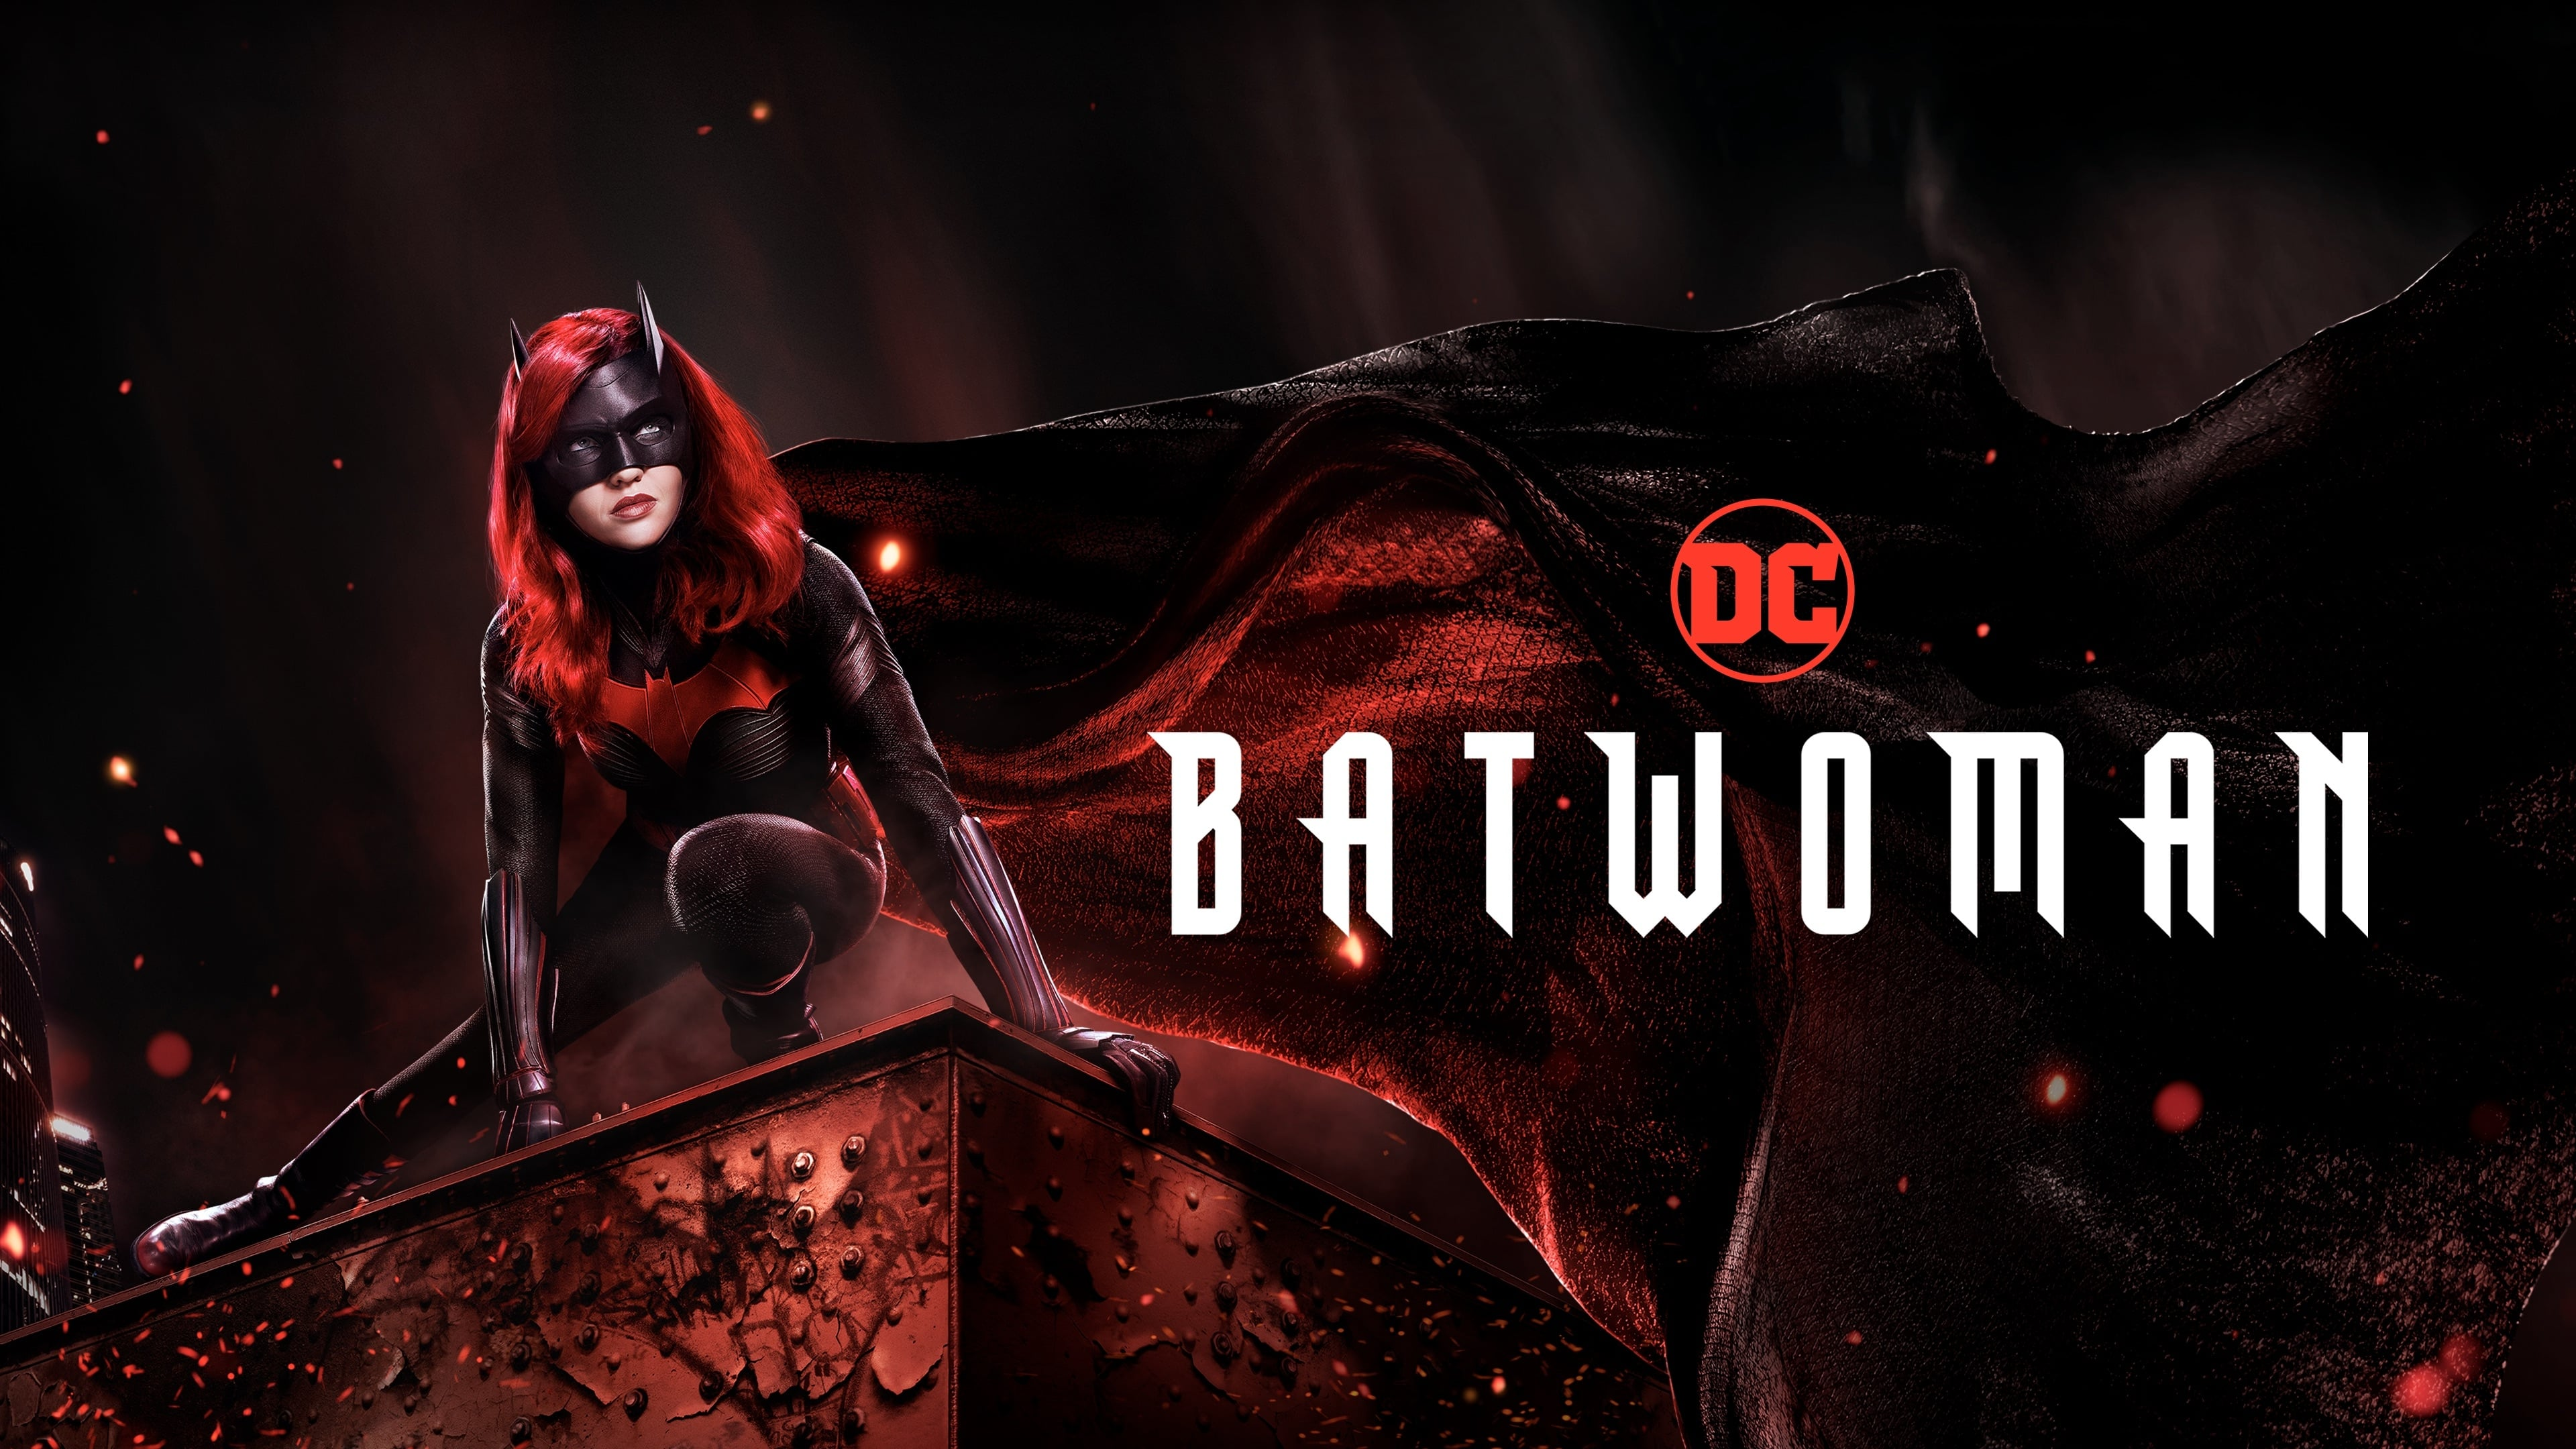 Javicia Leslie will be the new Batwoman